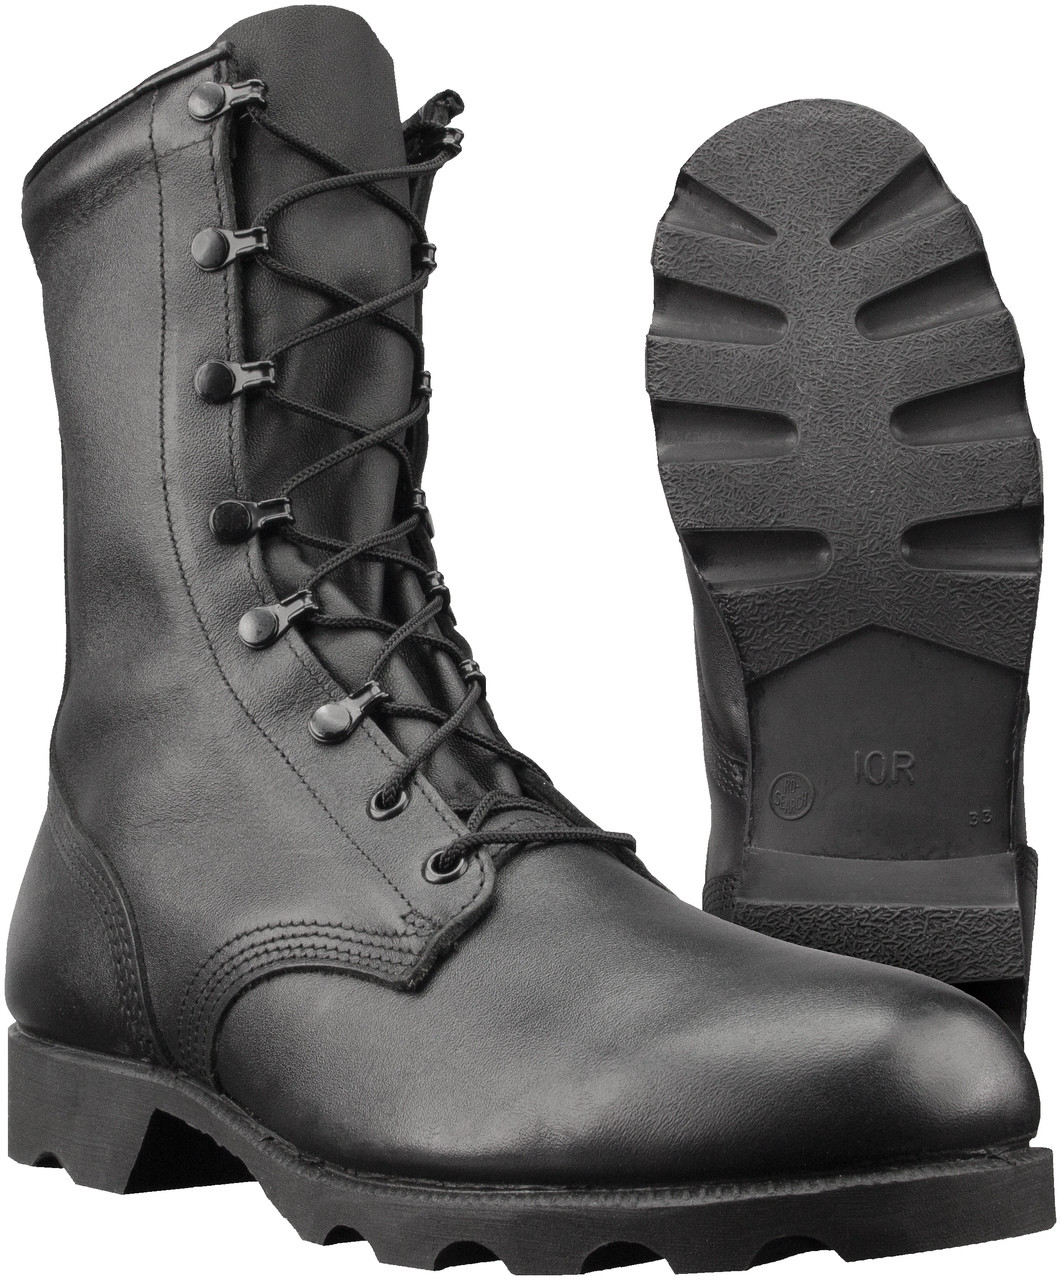 a24d2d48890 Altama 515701 Men's Leather Combat 10